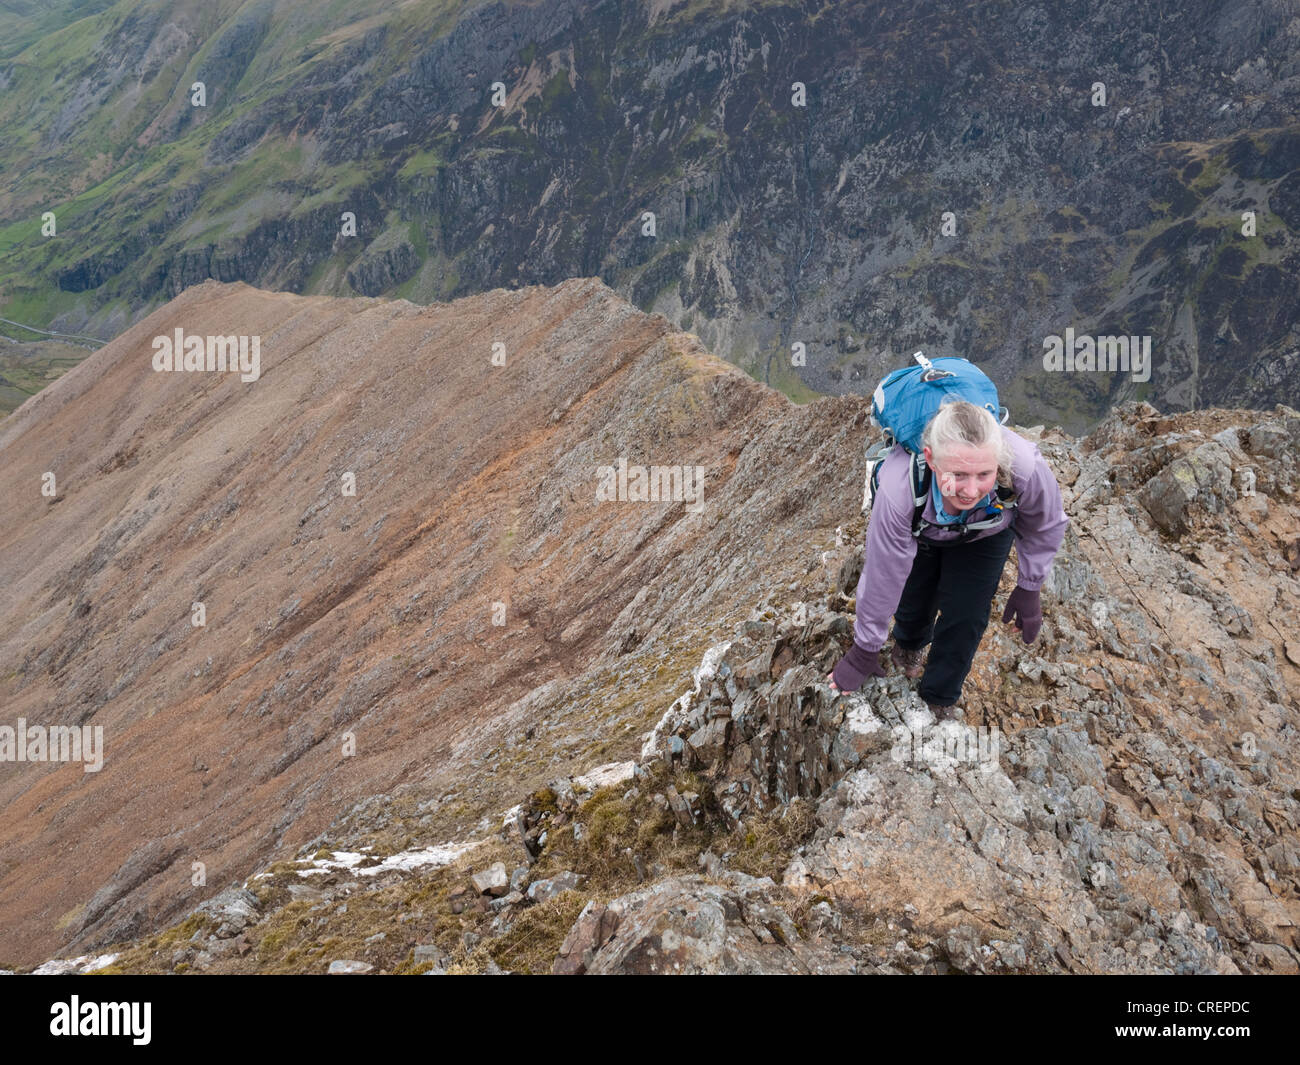 North ridge stock photos north ridge stock images alamy a female hillwalker reaches the top of the north ridge approach to crib goch the publicscrutiny Gallery